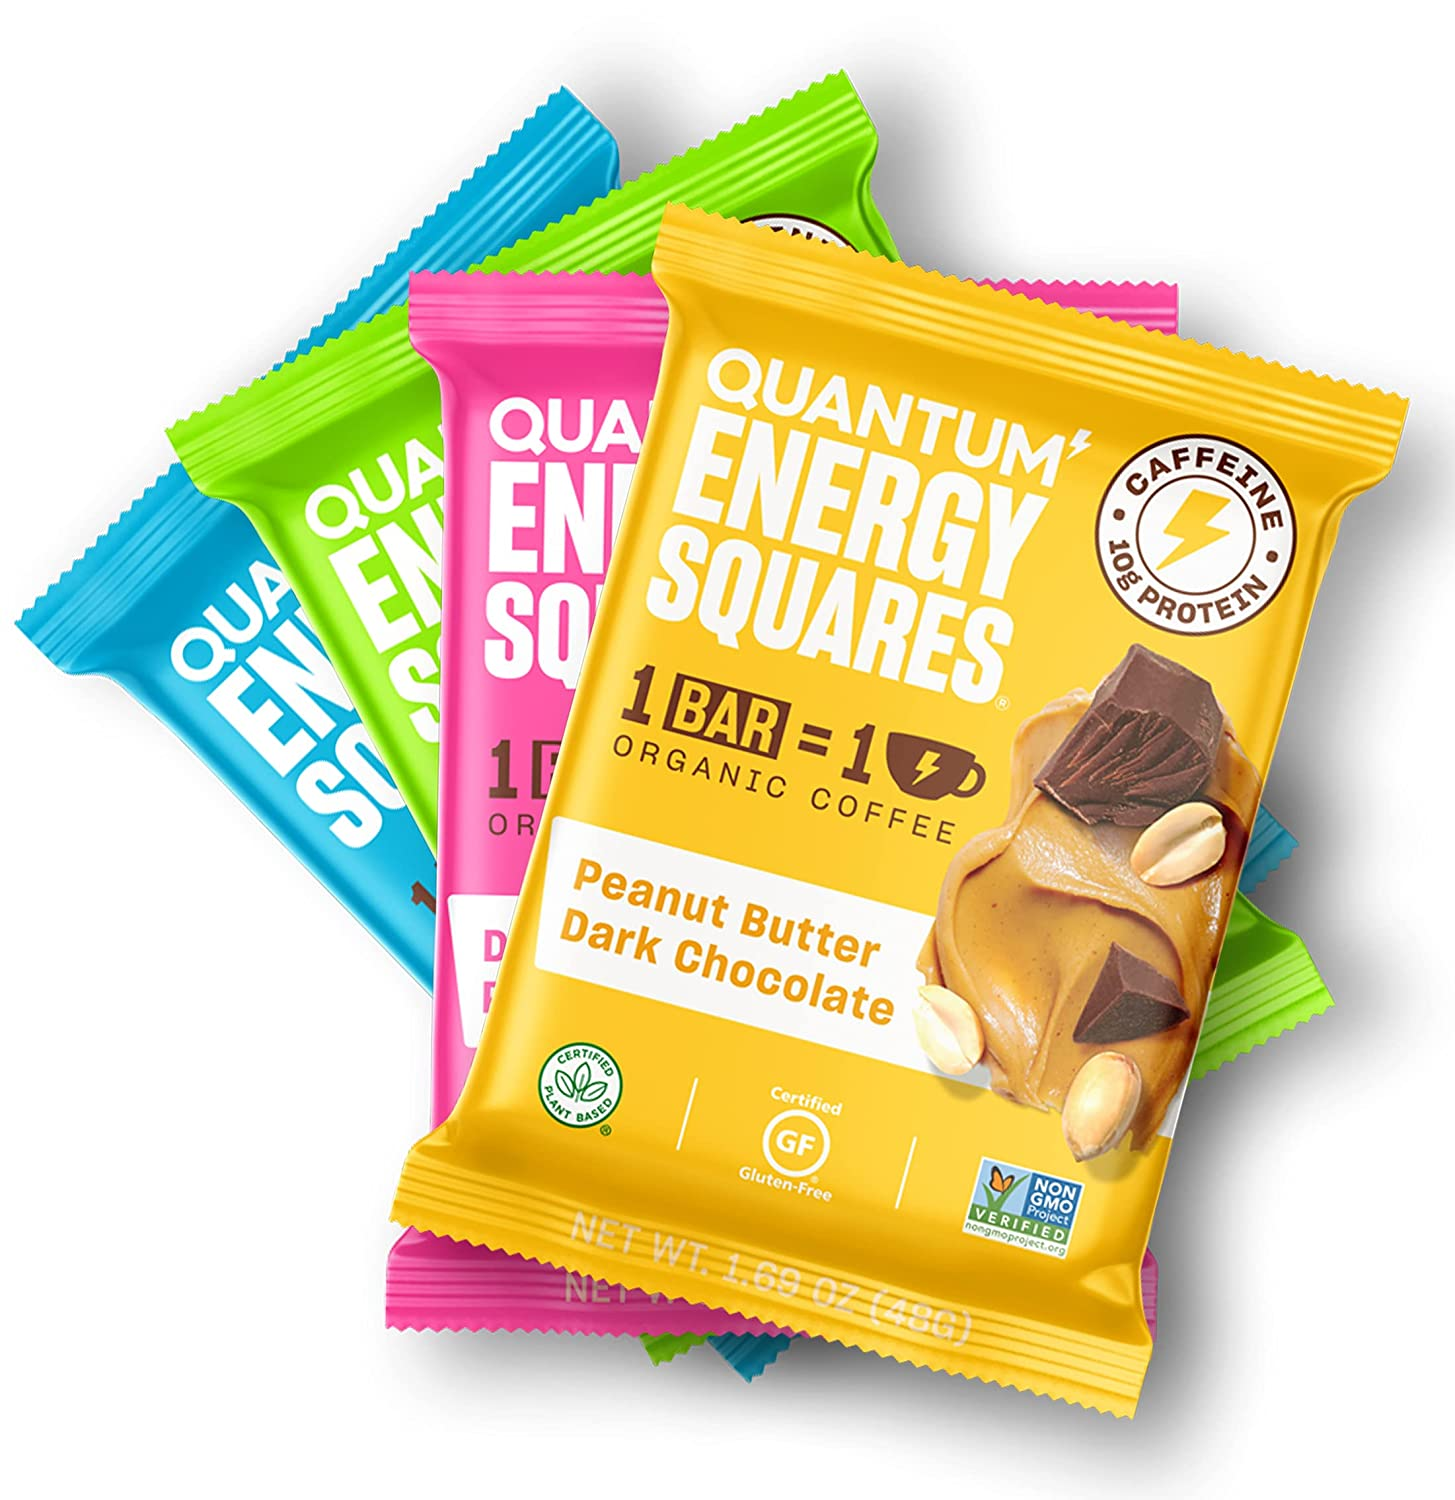 QUANTUM Energy Squares | Caffeinated Vegan Energy Bars | 1 Bar = 1 Cup Organic Coffee Plus Protein, MCTs & Real Food | Gluten Free, Dairy Free, Soy Free, Non-GMO | (Trial 4 Pack)